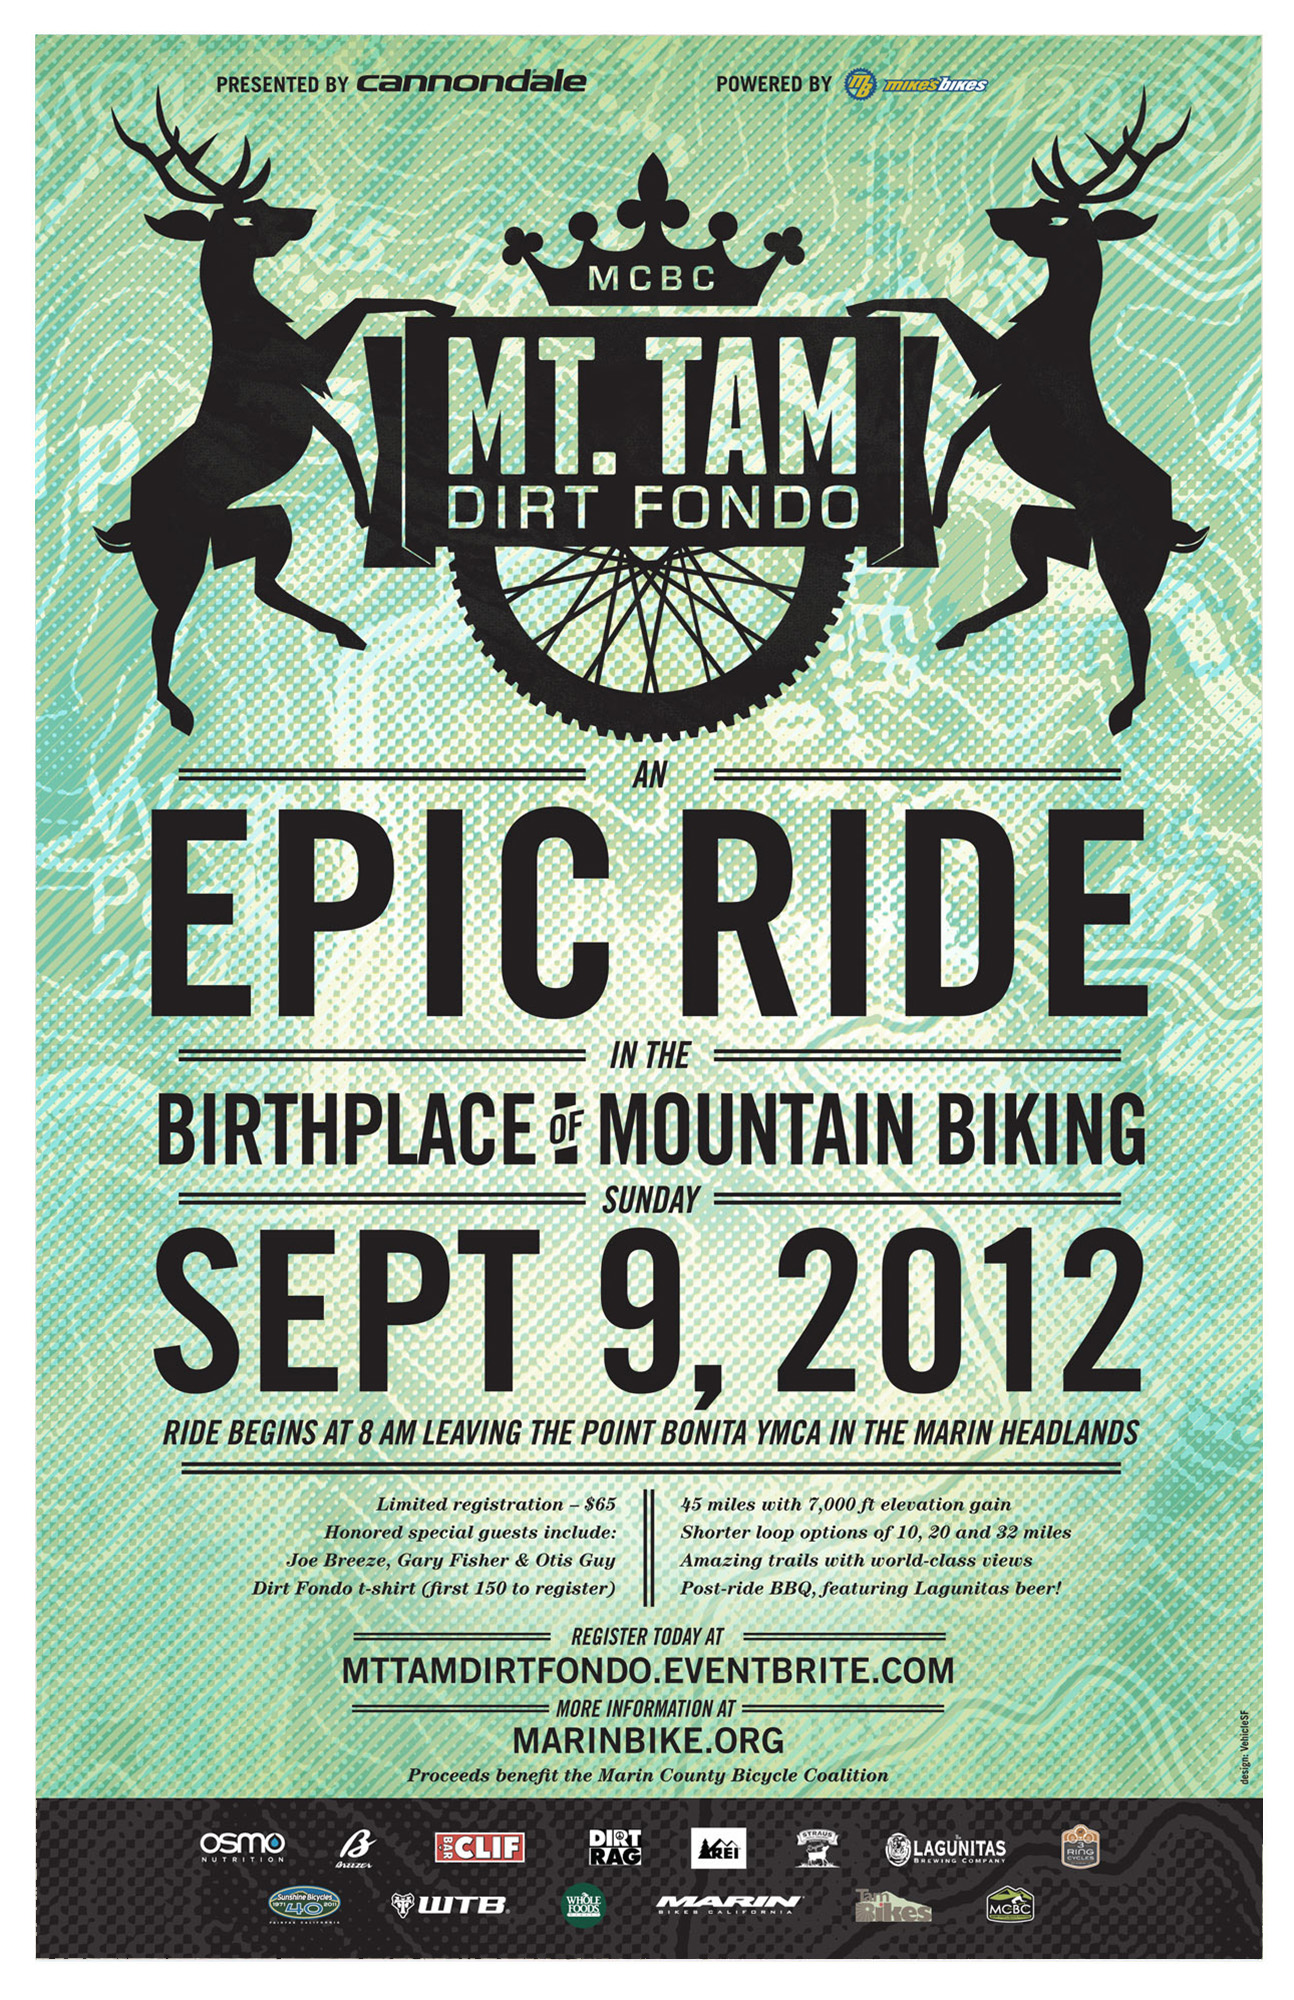 Dirt Fondo 2012 poster announcing date and event with gradient graphic designs and deer illustrations